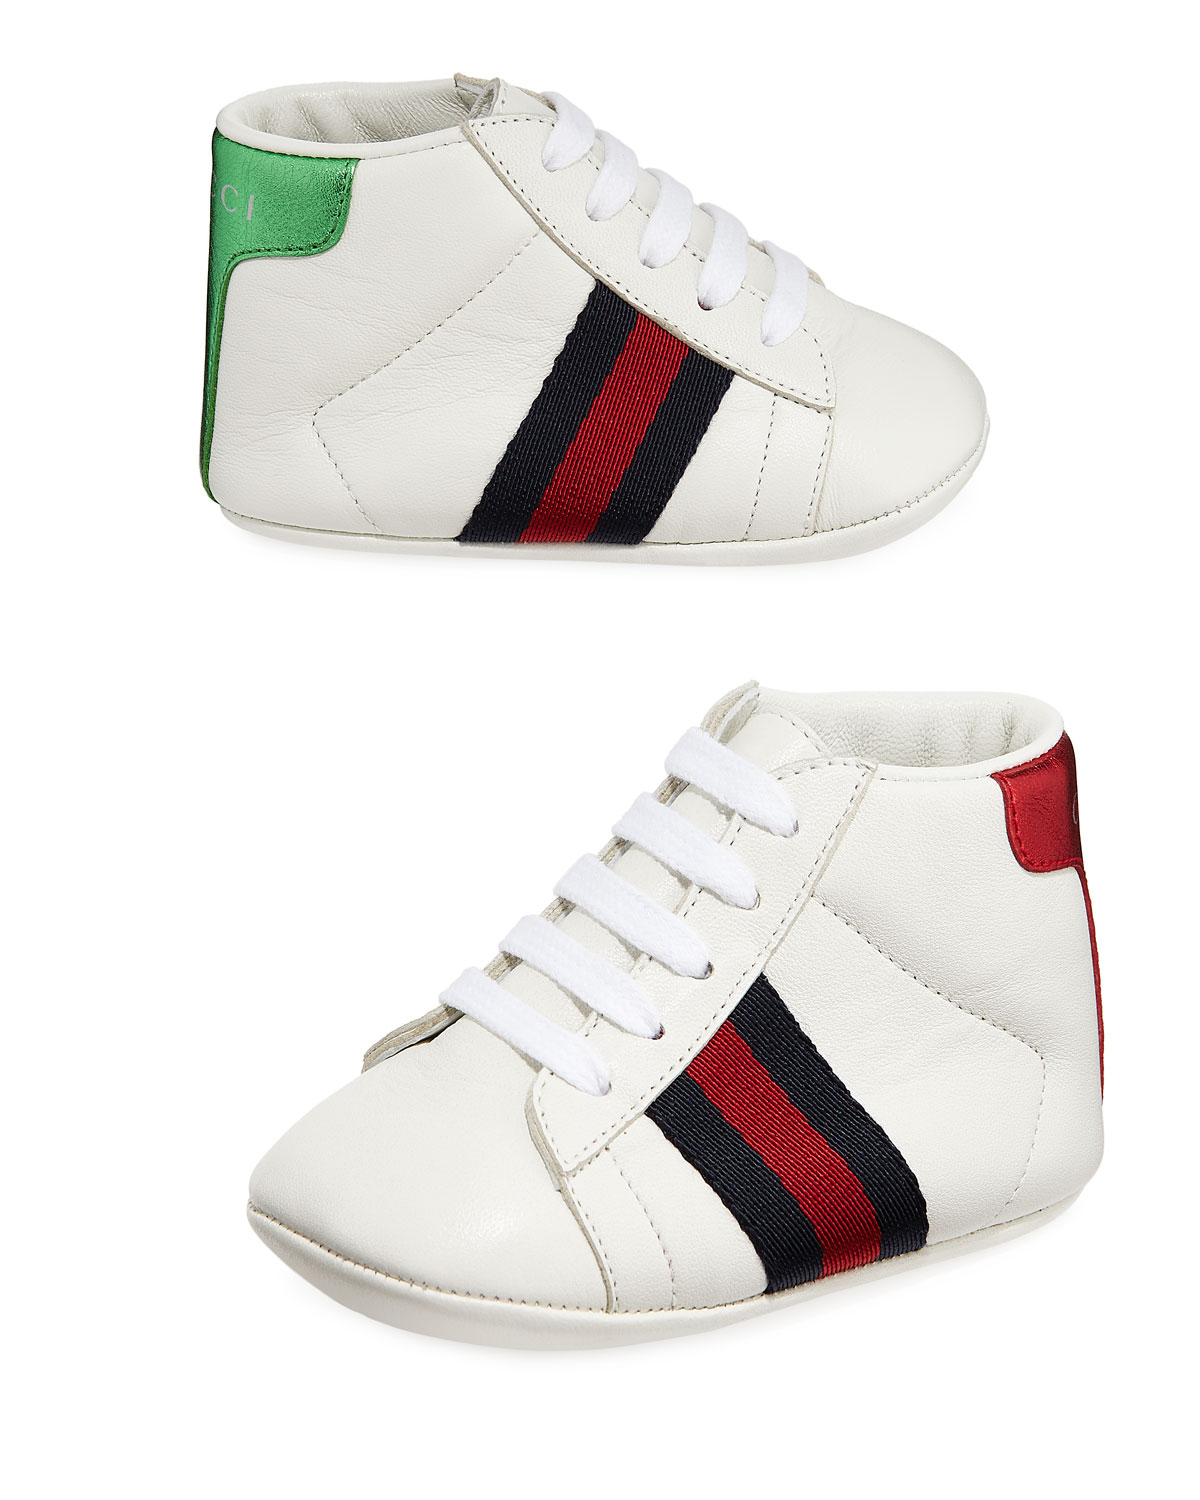 Aceweb new ace web-trim leather sneakers, baby